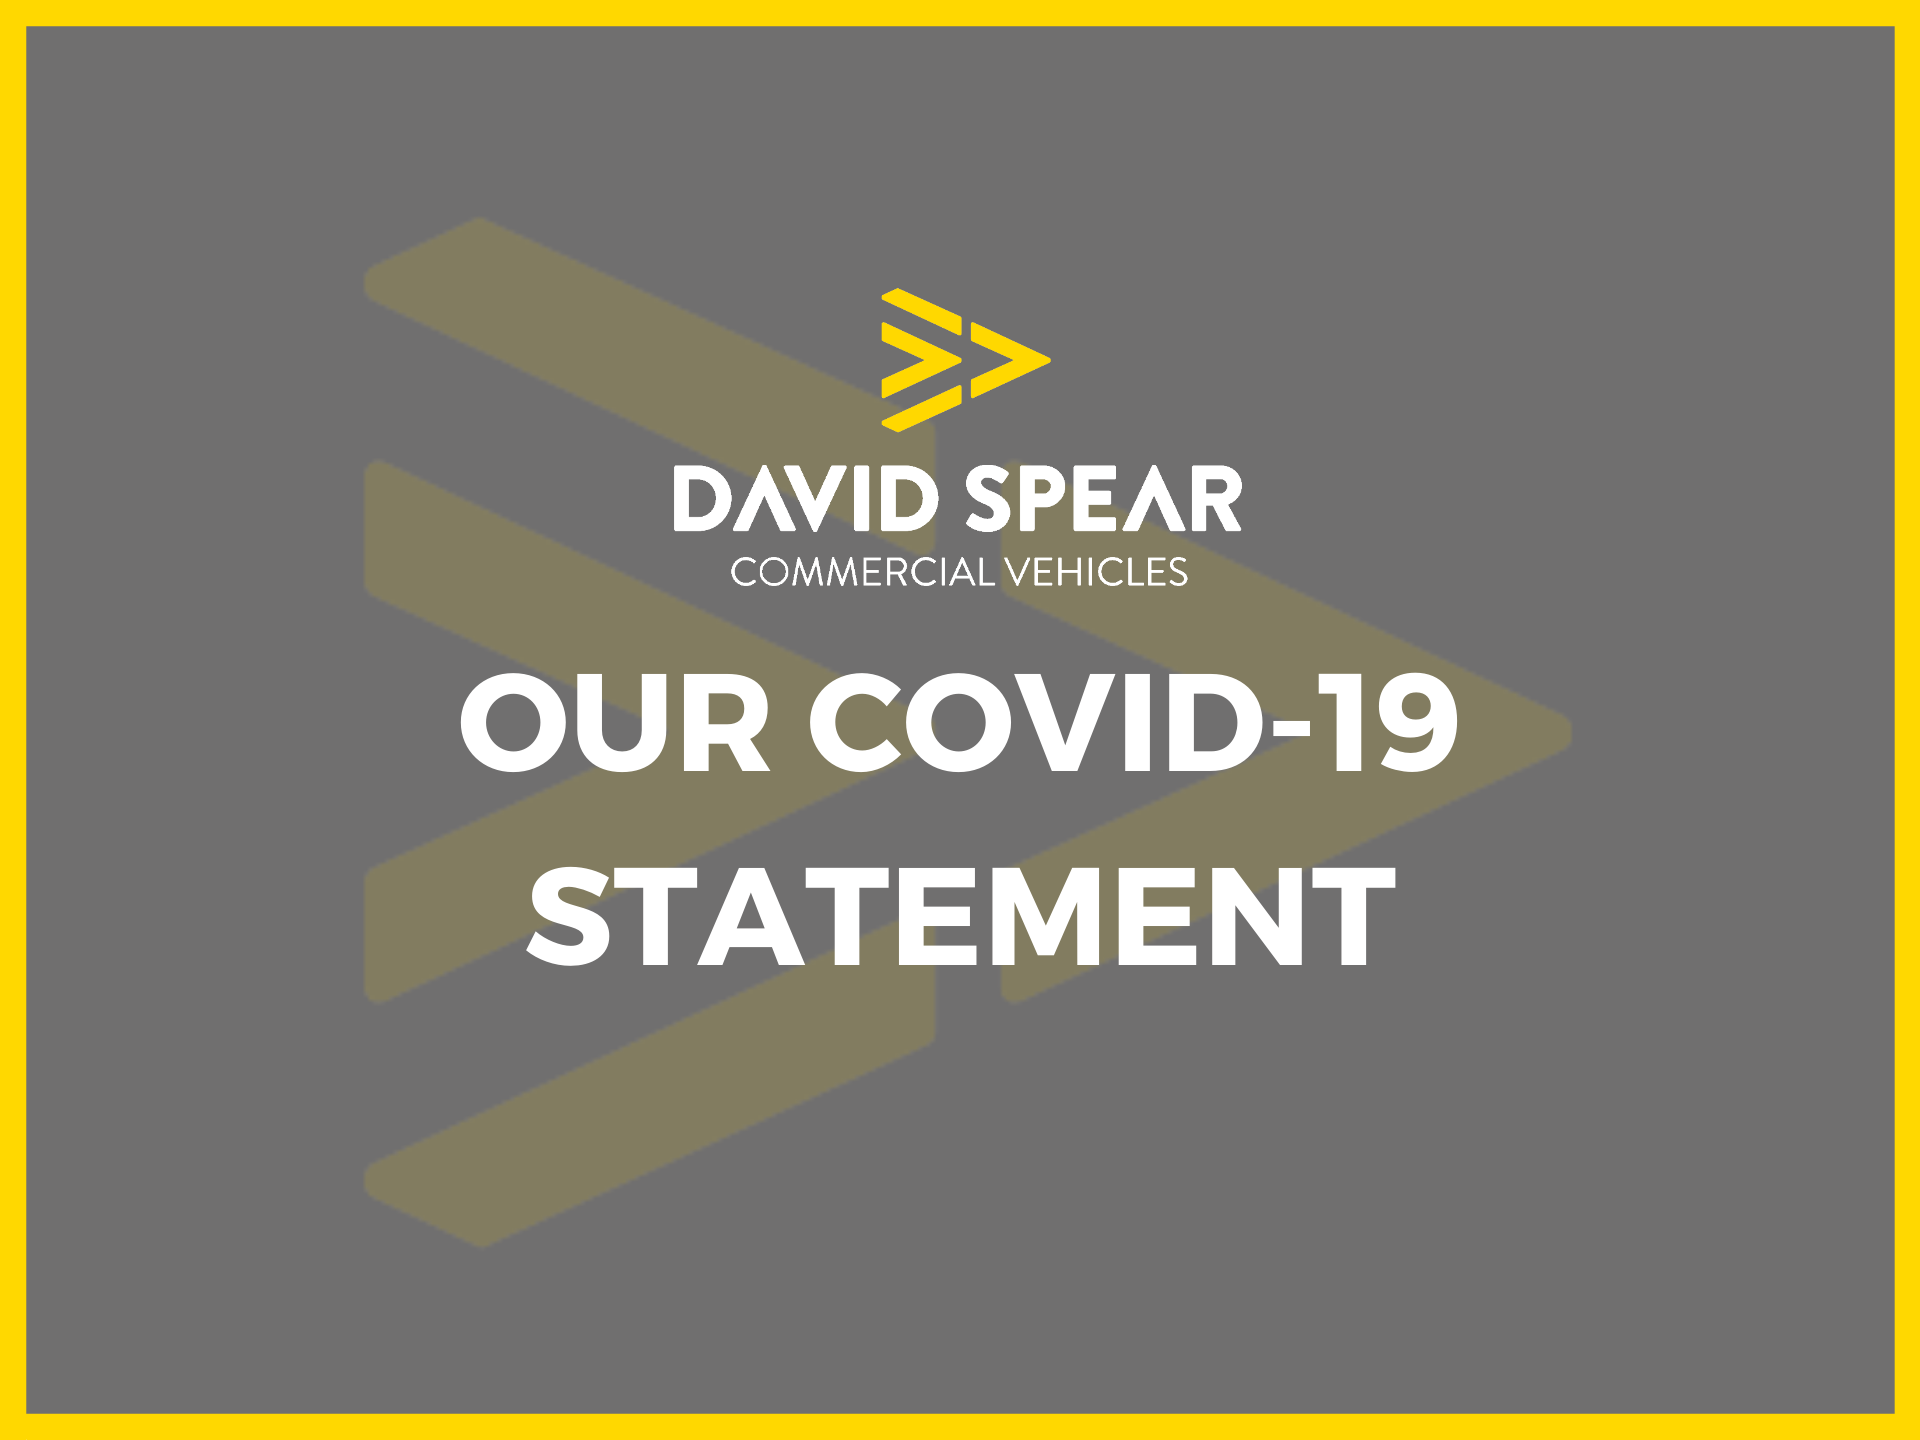 Covid 19 Statement Image